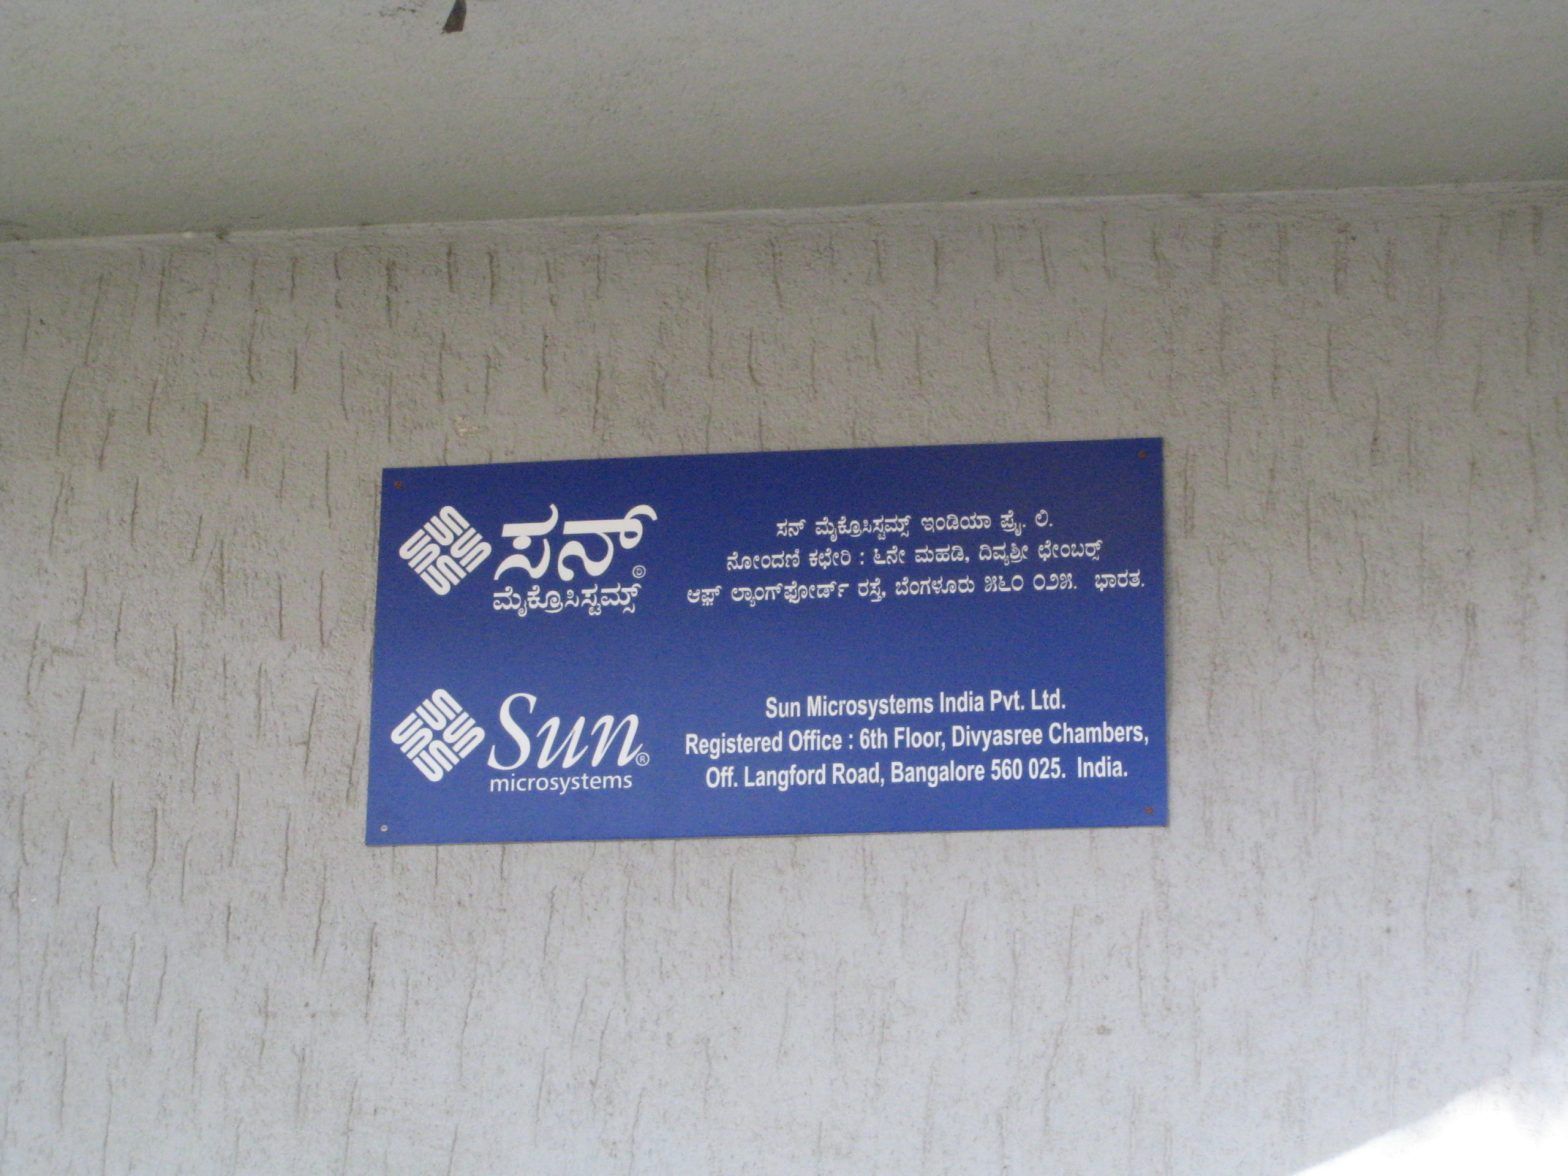 Sun Microsystems office sign in Bangalore, in Kannada and English